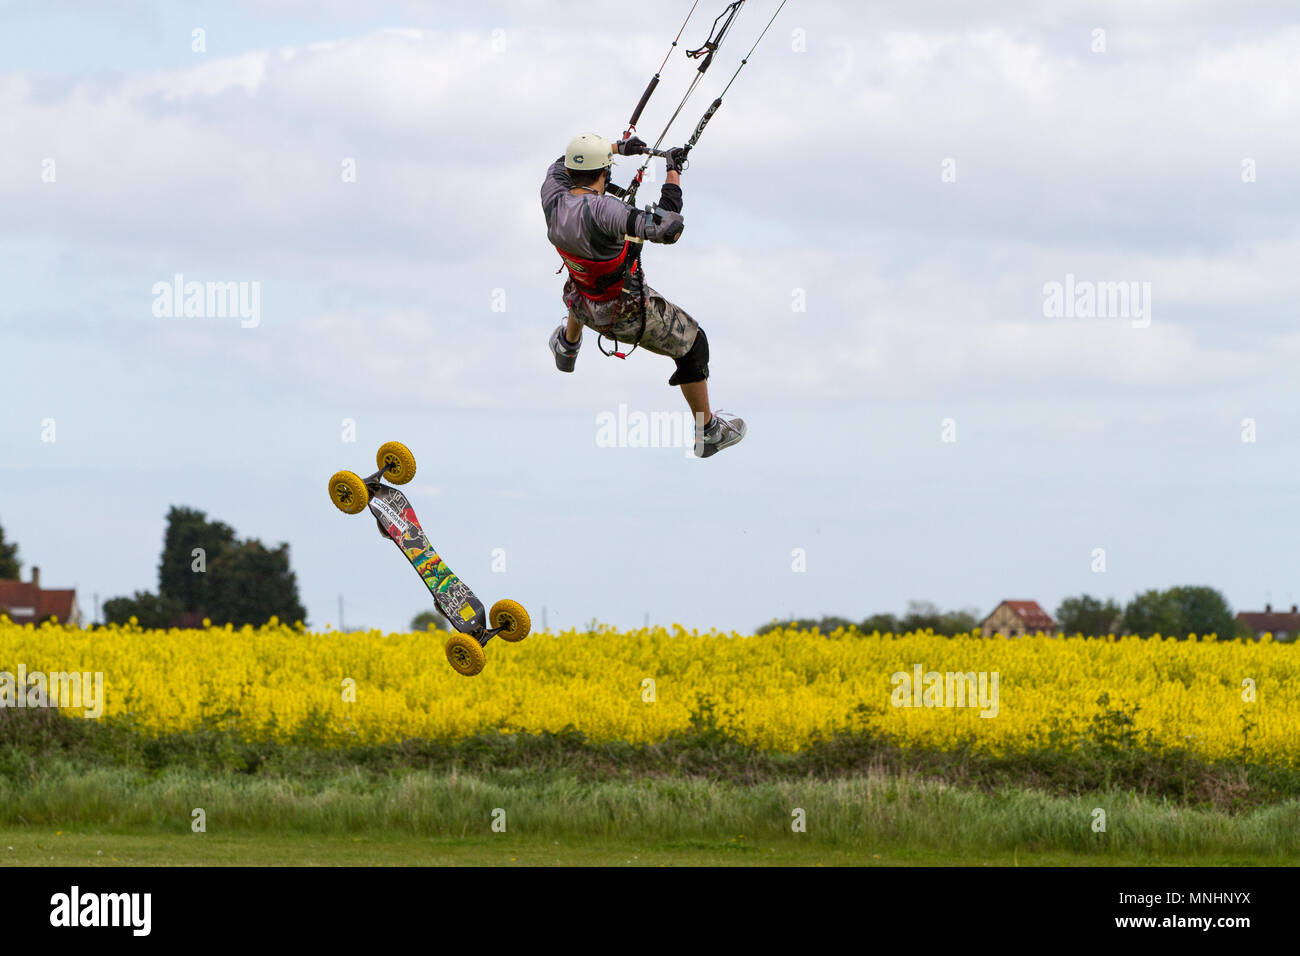 Extreme sport kite landboarding in Essex, UK. Loss of board whilst airborne. - Stock Image